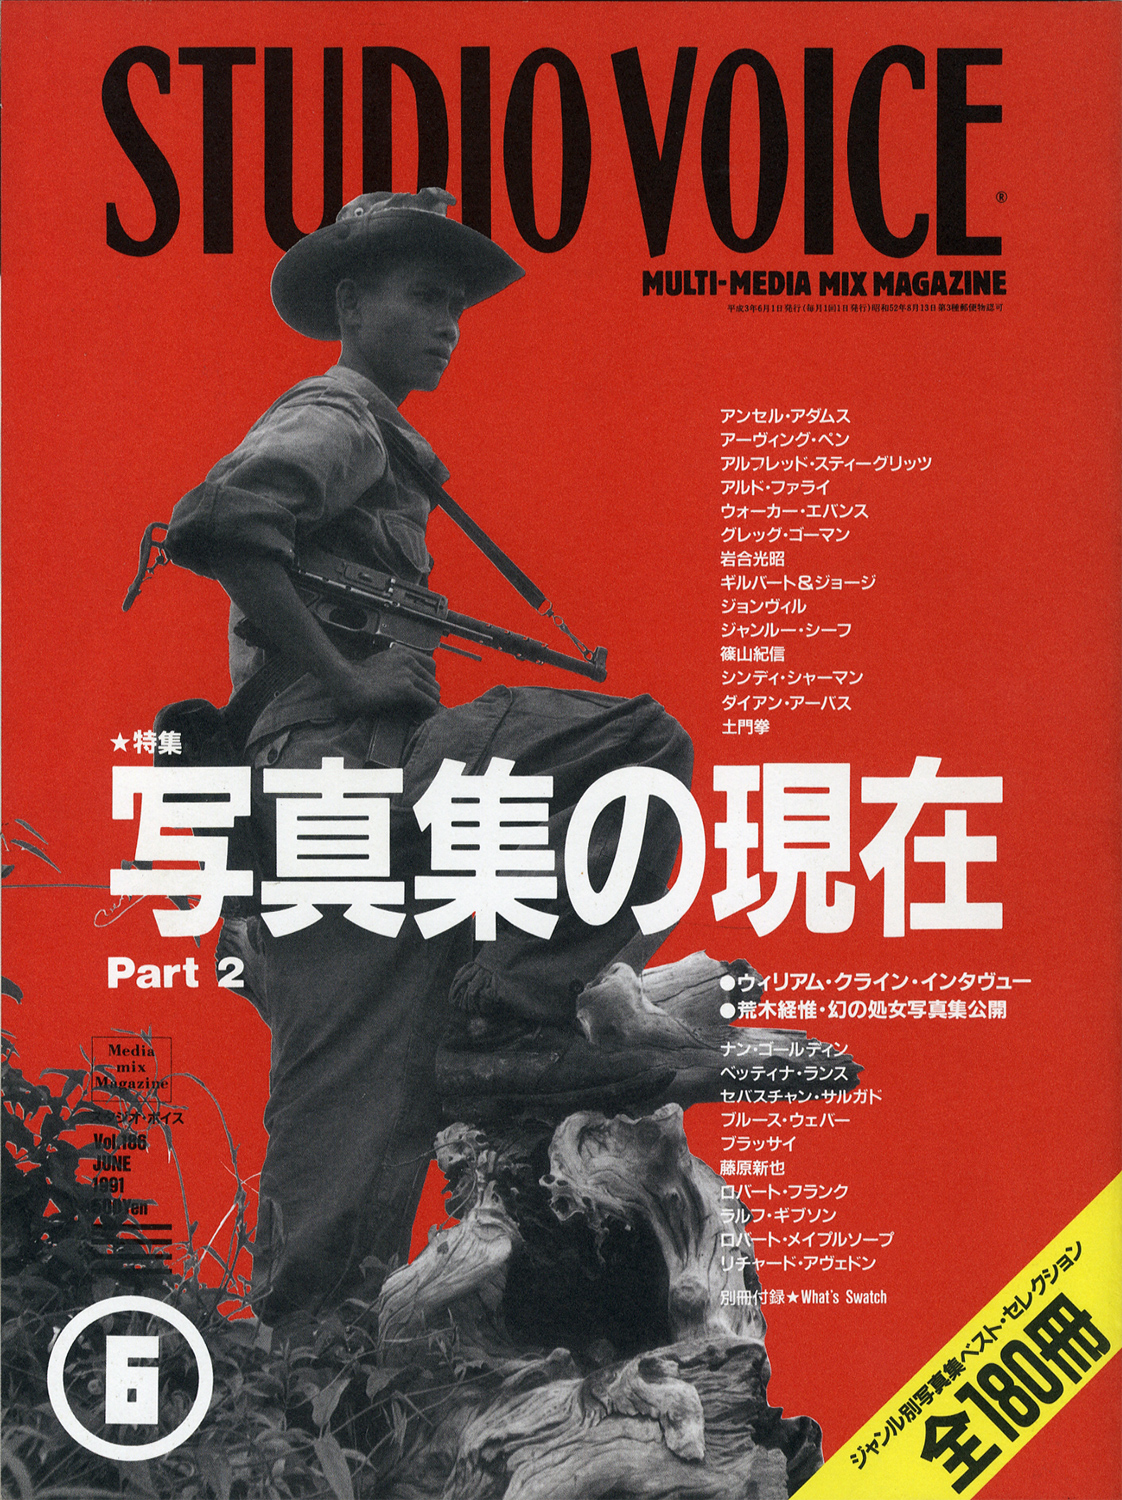 STUDIO VOICE MULTI-MEDIA MIX MAGAZINE/スタジオ・ボイス 1991年6月号 Vol.186